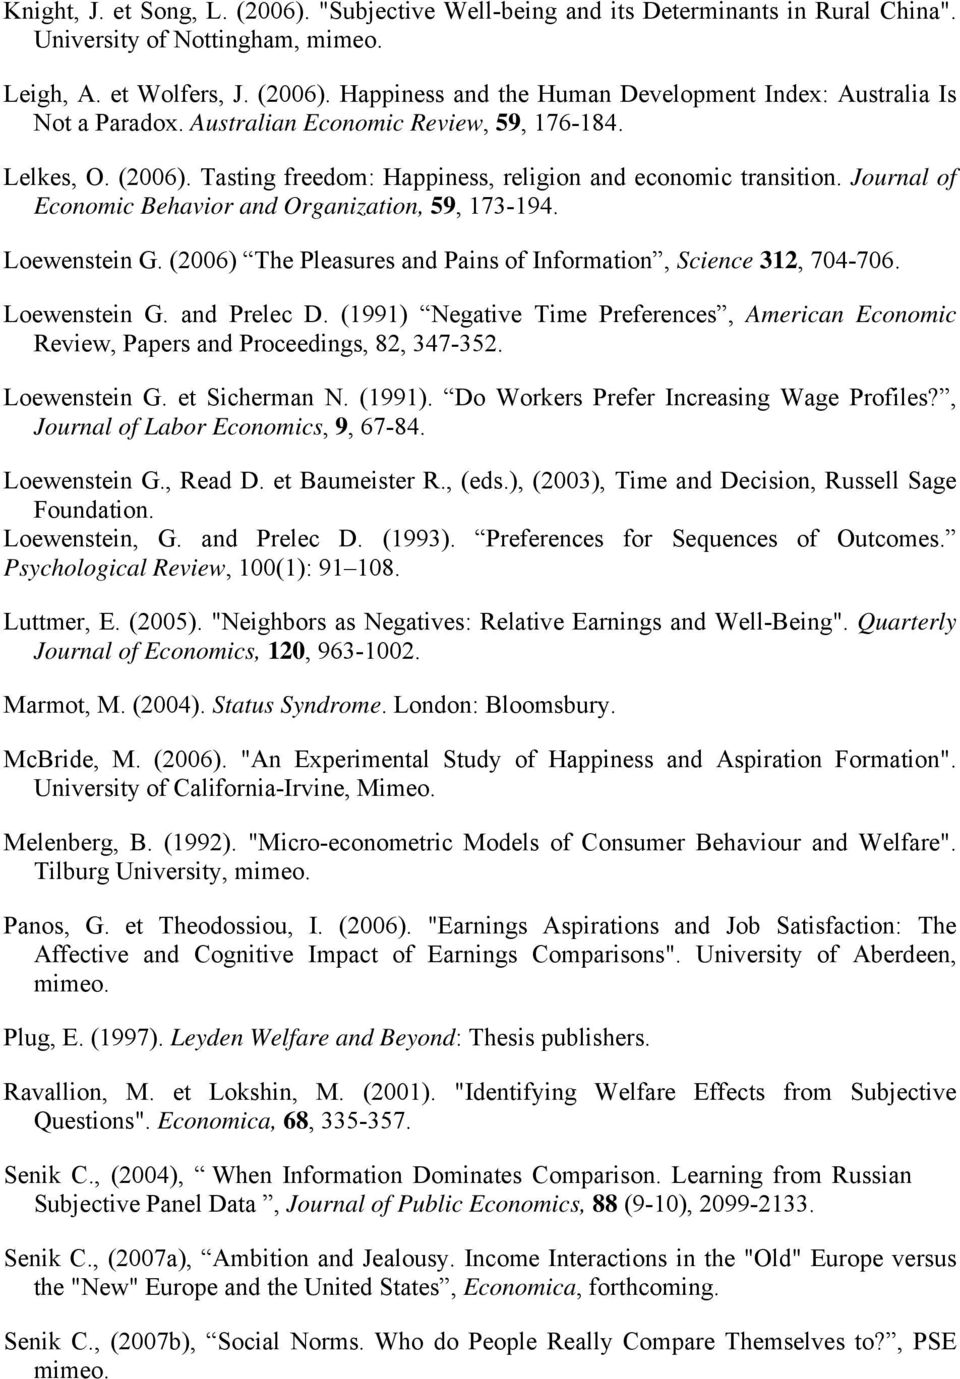 (2006) The Pleasures and Pains of Informaion, Science 312, 704-706. Loewensein G. and Prelec D. (1991) Negaive Time Preferences, American Economic Review, Papers and Proceedings, 82, 347-352.